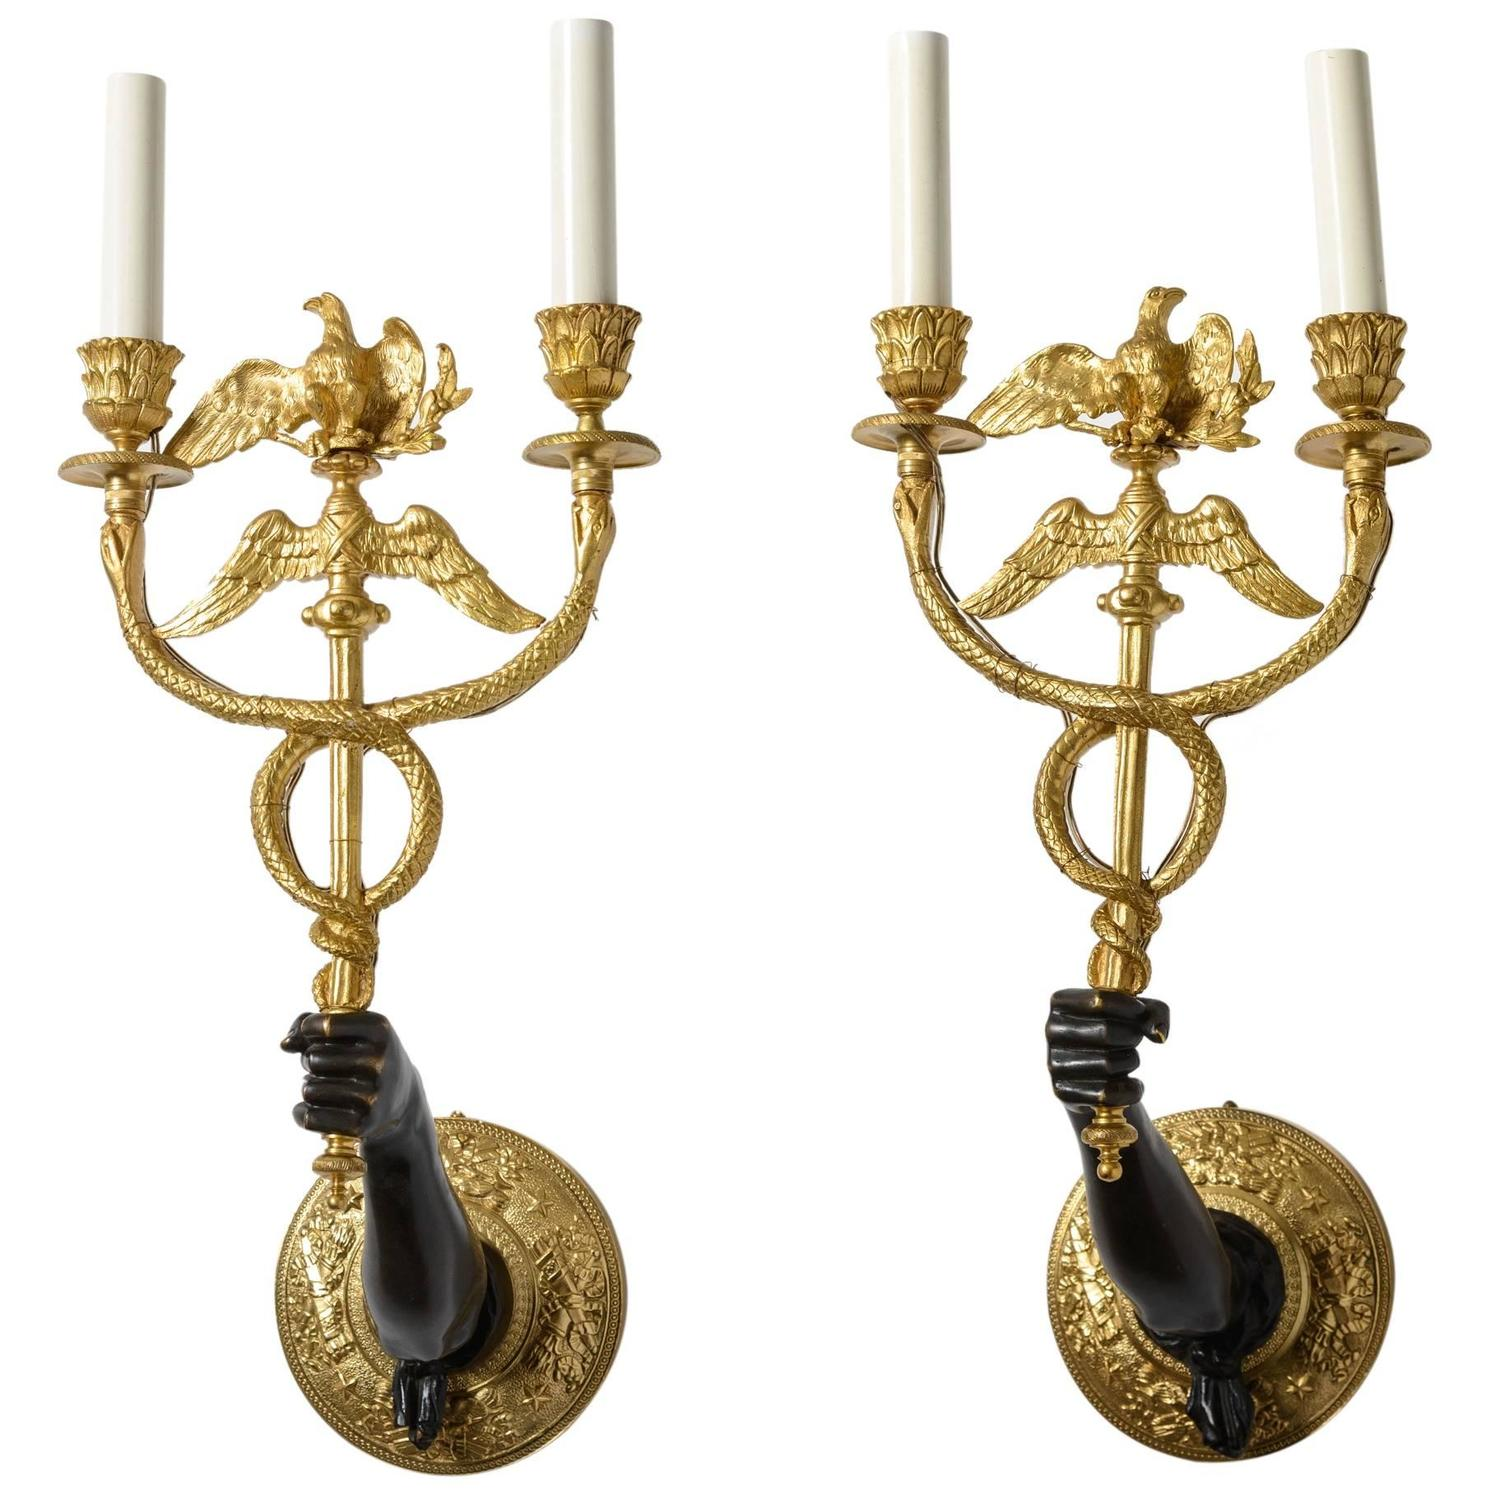 Pair Of 19th Century French Empire Style Bronze Wall-Mount